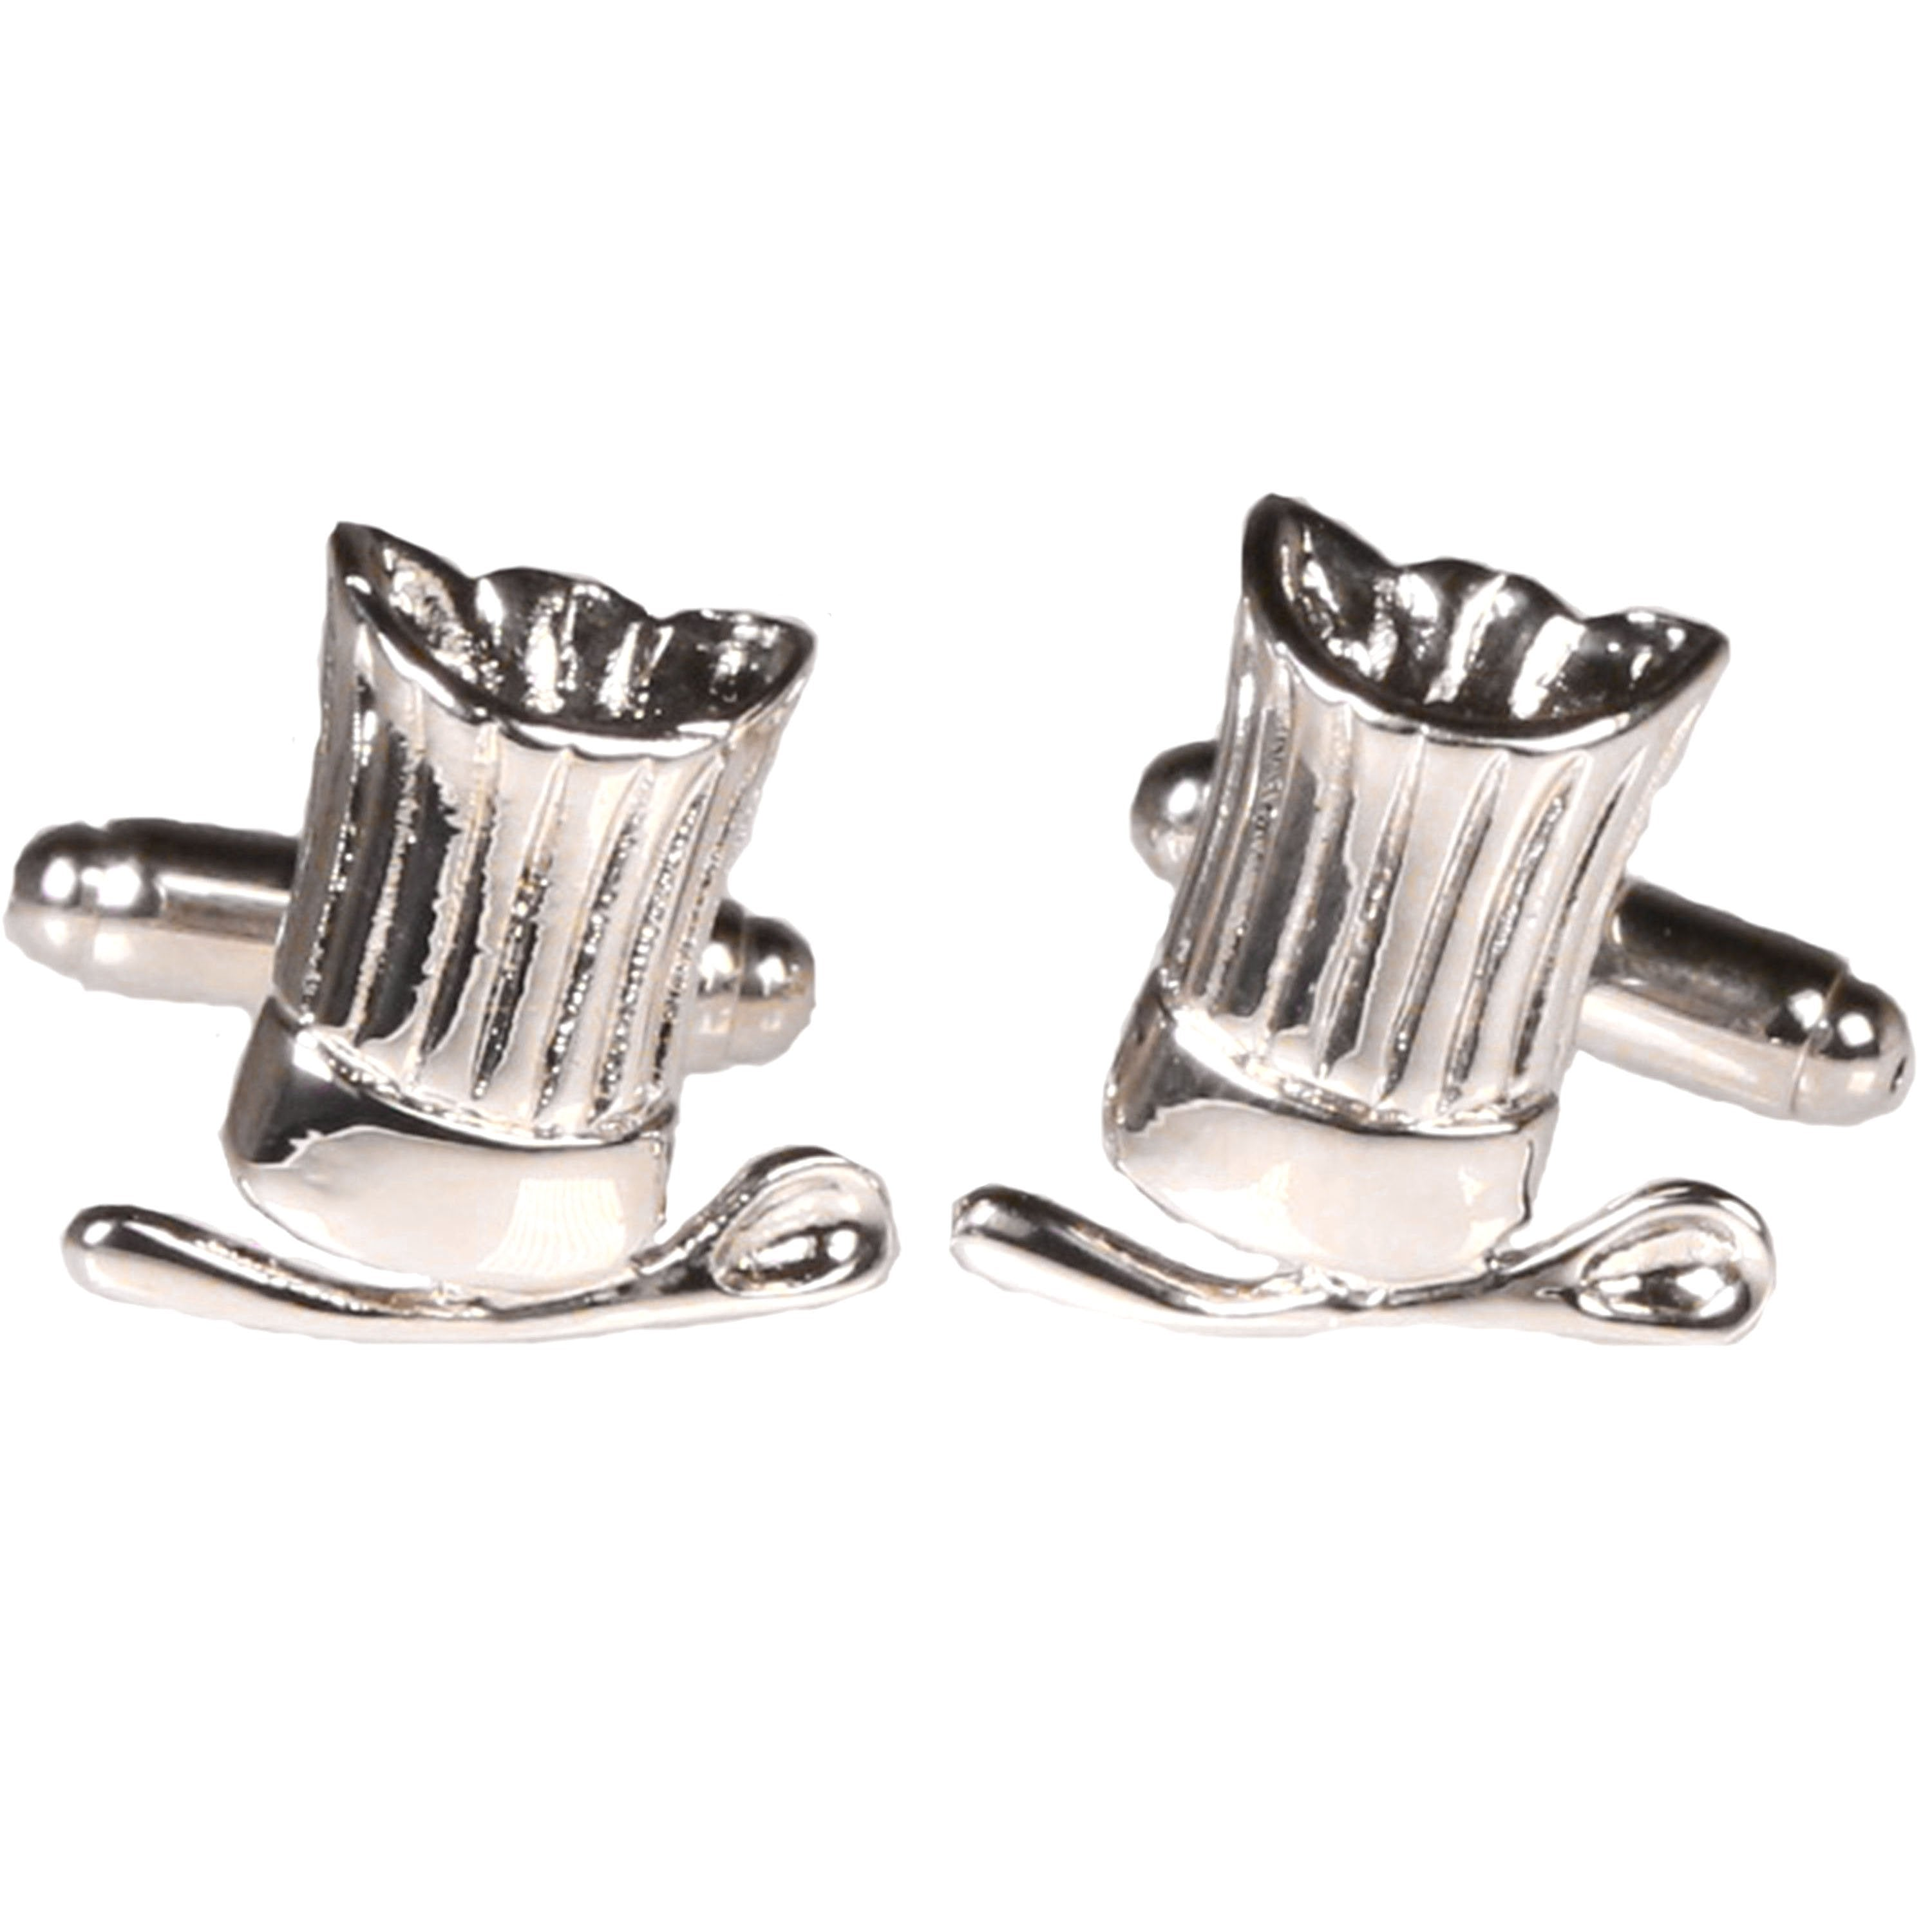 Silvertone Novelty Chef Hat Cufflinks with Jewelry Box - Giorgio's Menswear